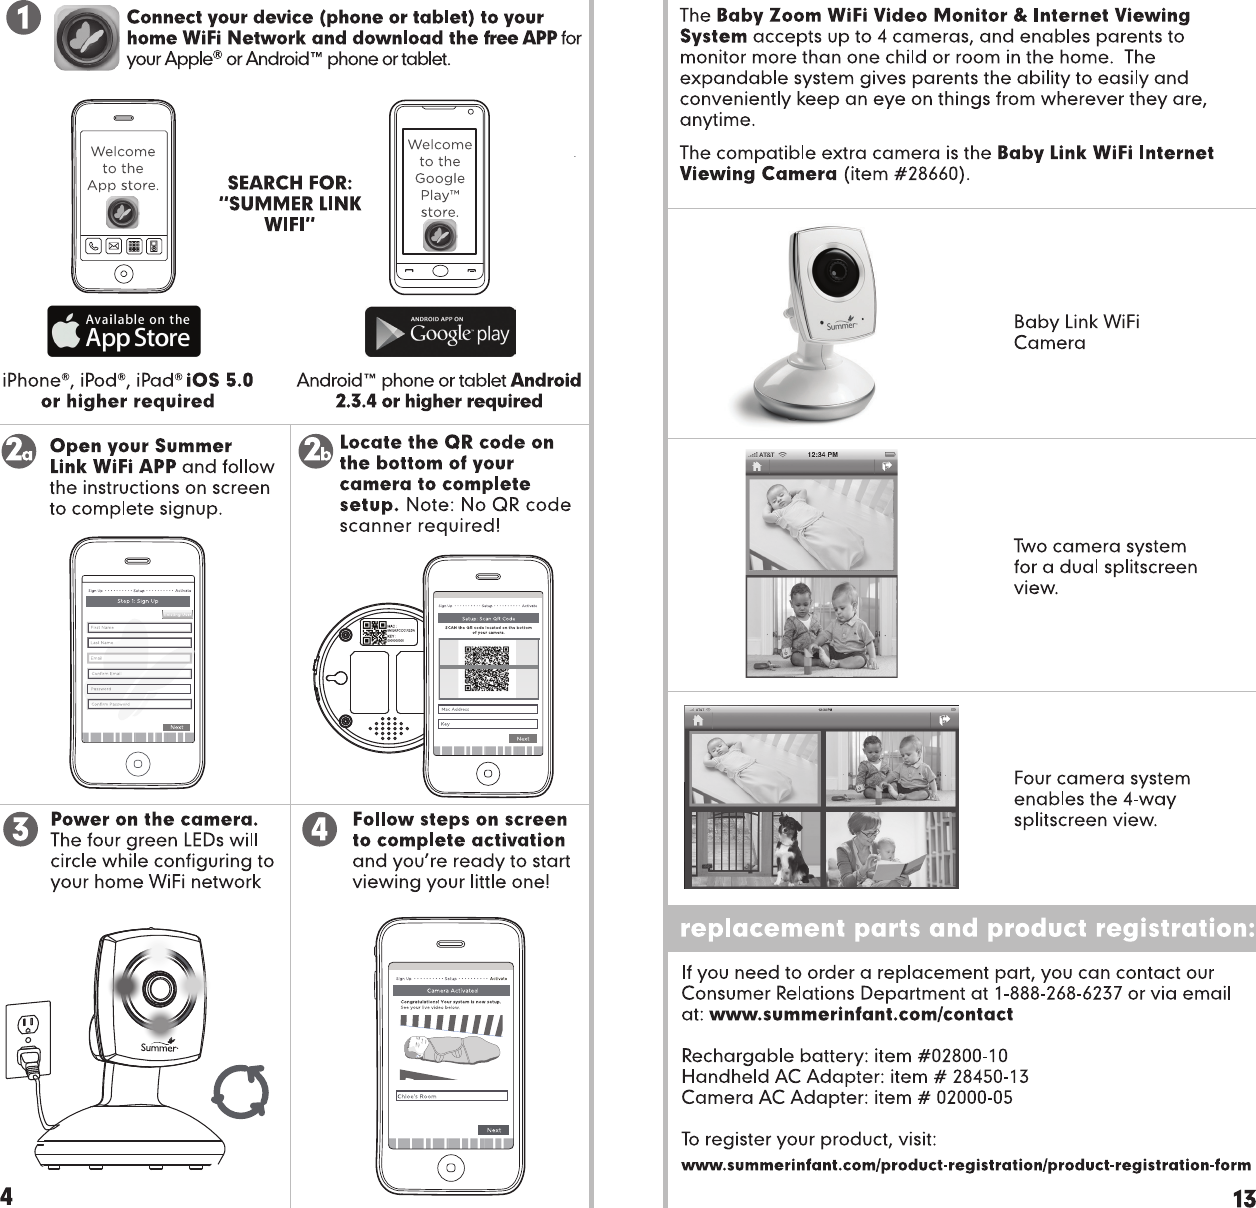 Summer infant 863r baby monitor user manual 28630 baby zoom wi fi page 4 of summer infant 863r baby monitor user manual 28630 baby zoom wi fi monitor sciox Images